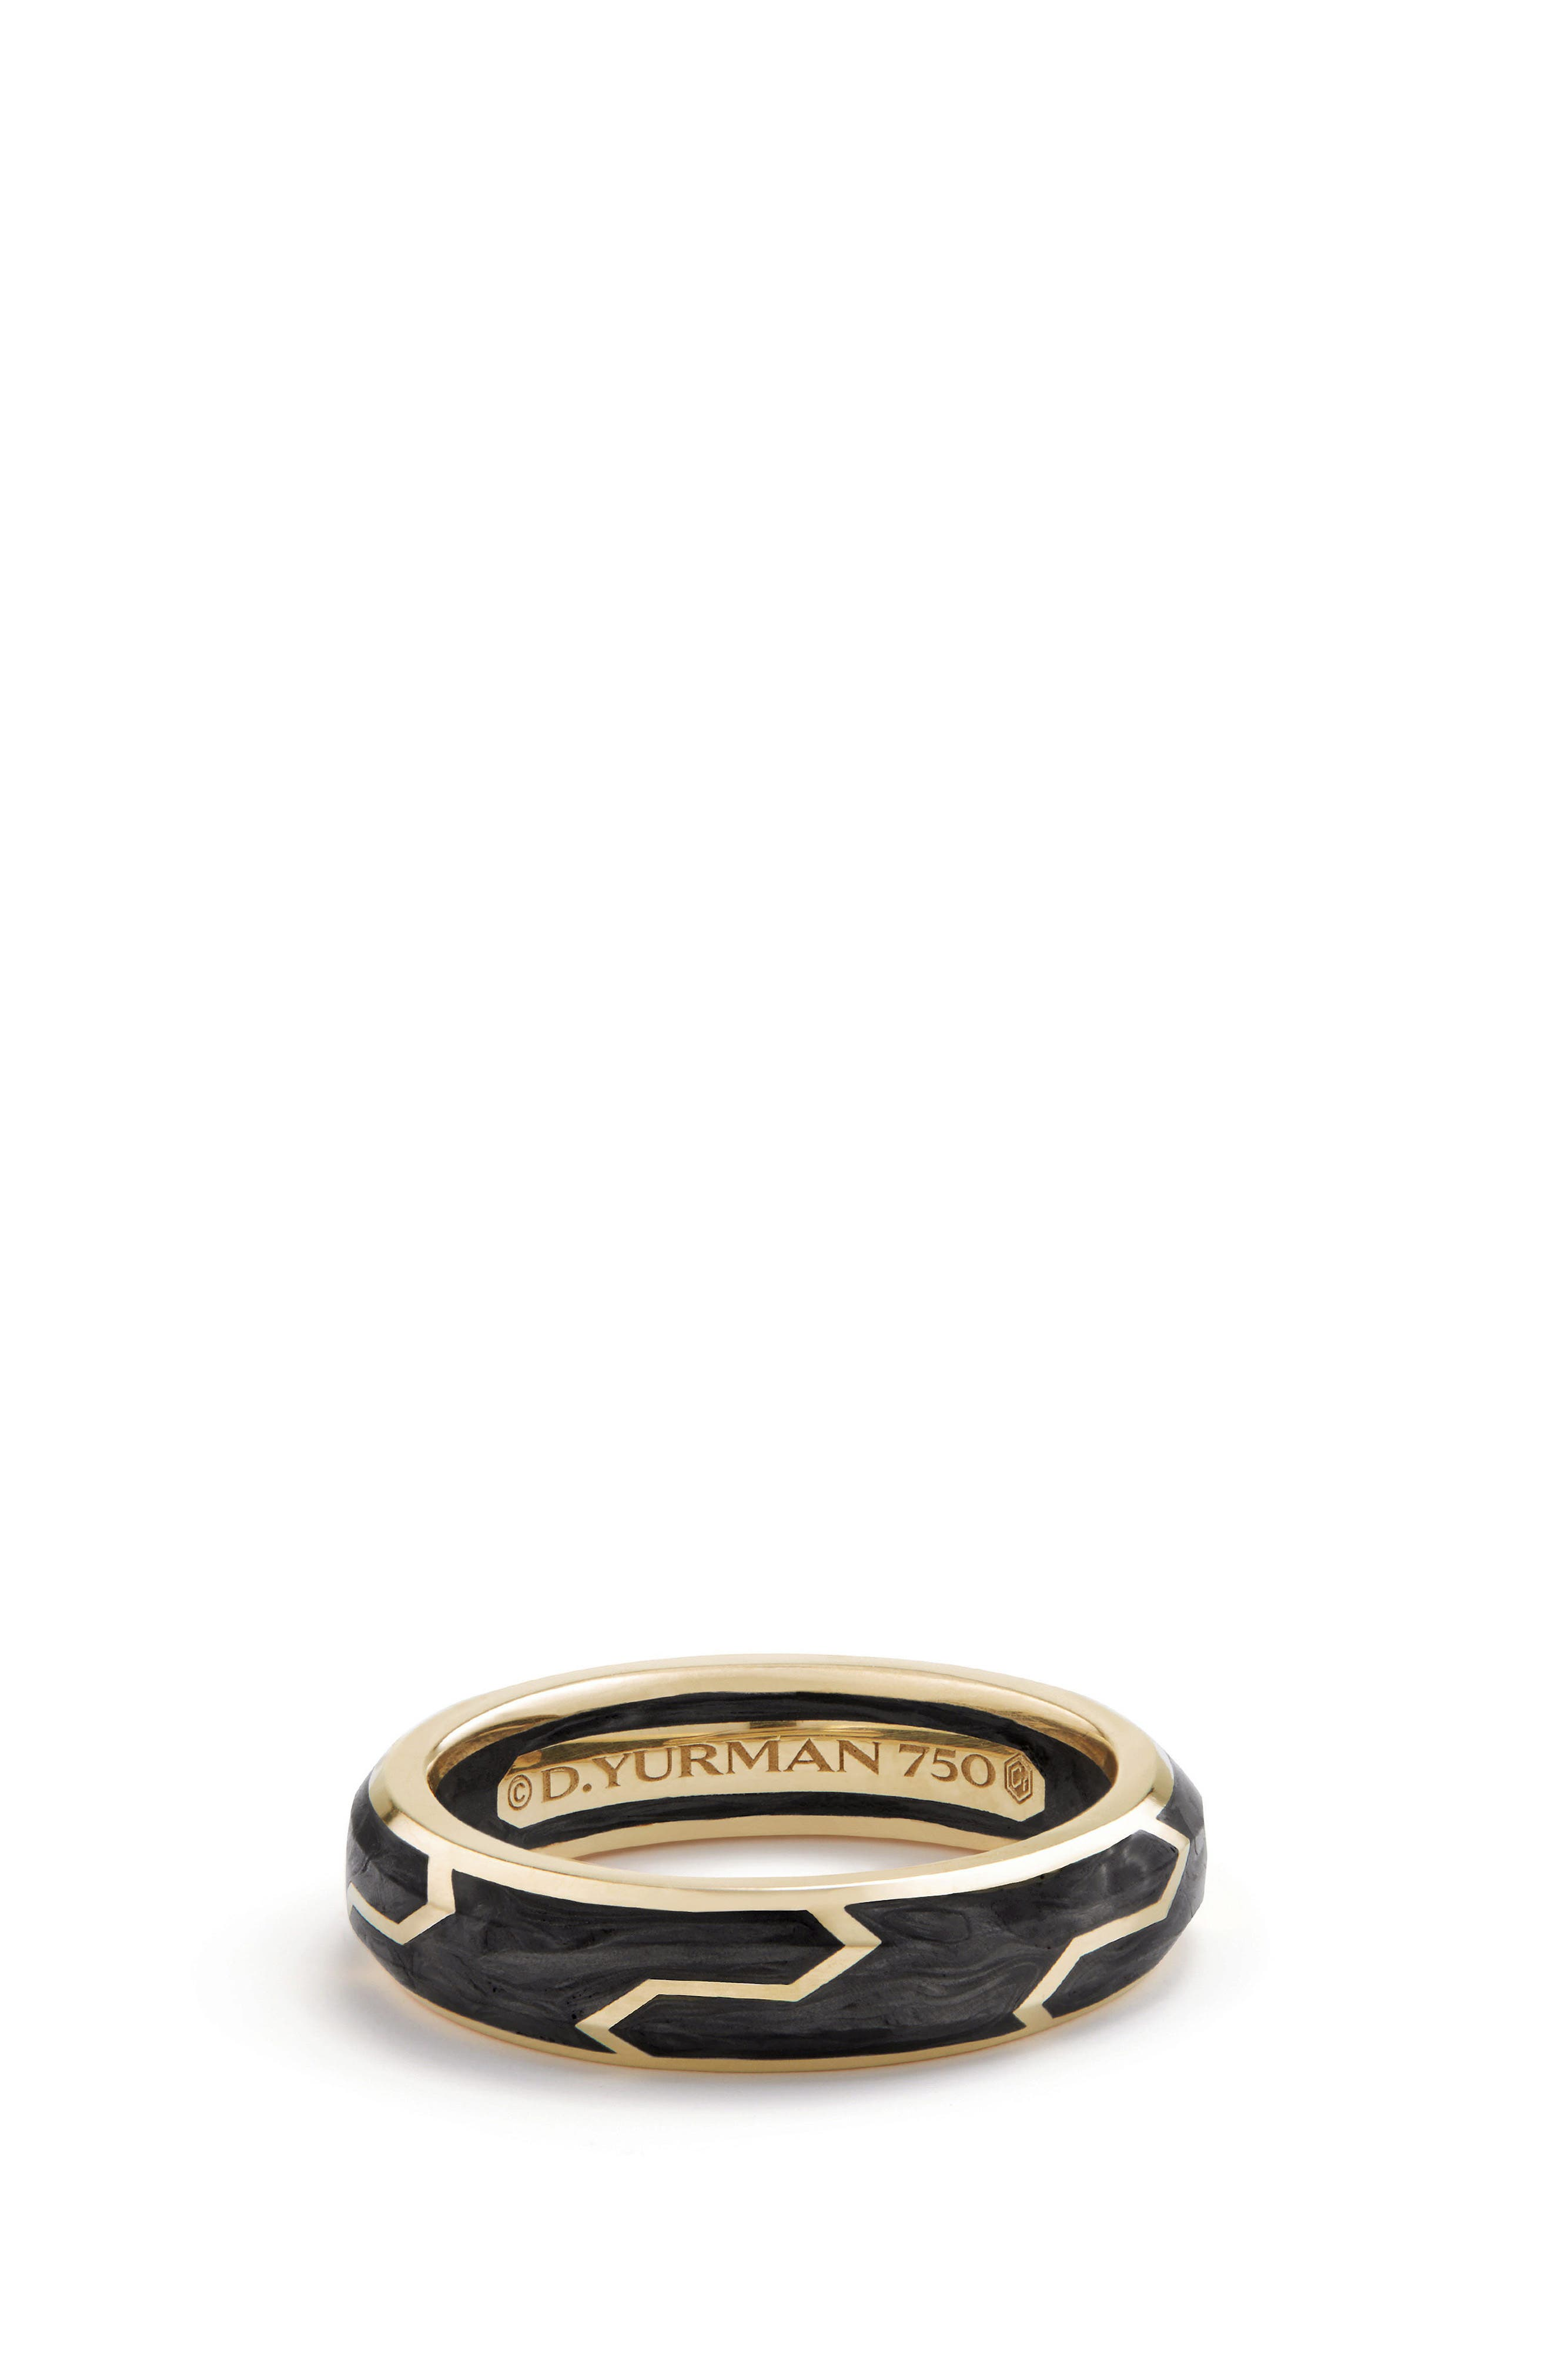 Main Image - David Yurman Forged Carbon Band Ring in 18K Gold, 6mm